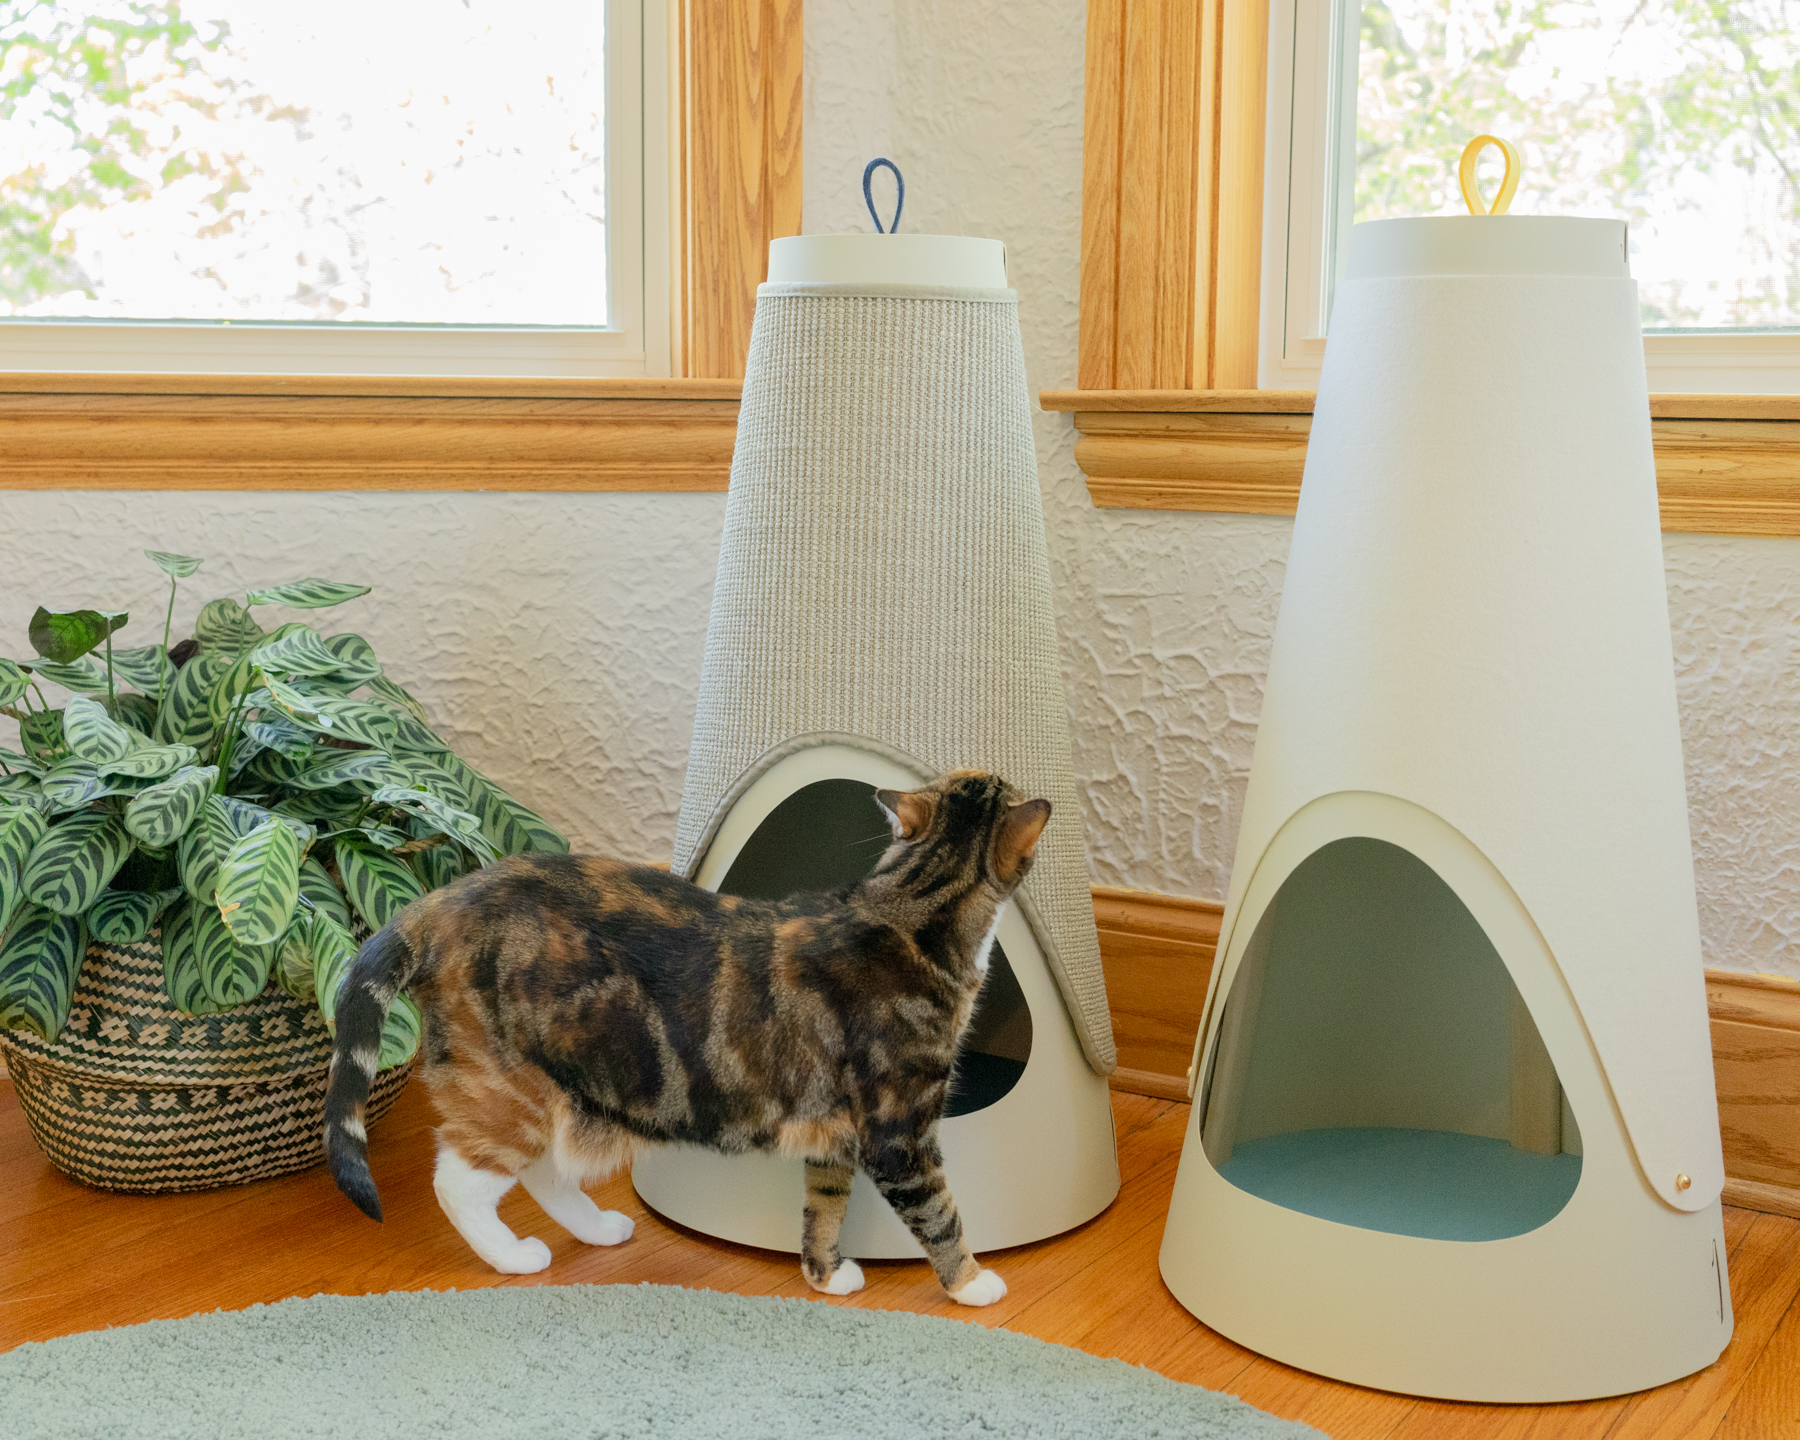 THE BEST SCRATCH FOR YOUR CAT - Cats can be picky, which is why we're offering the Cone with a choice of scratching wraps. Our felt wrap is soft with just a bit of texture, great for cats who like to scratch softer stuff like plush carpets and drapes. Our 100% natural sisal wrap is super strong and durable with lots of texture. If your kitty is shredding the furniture to bits, this is the one for them!